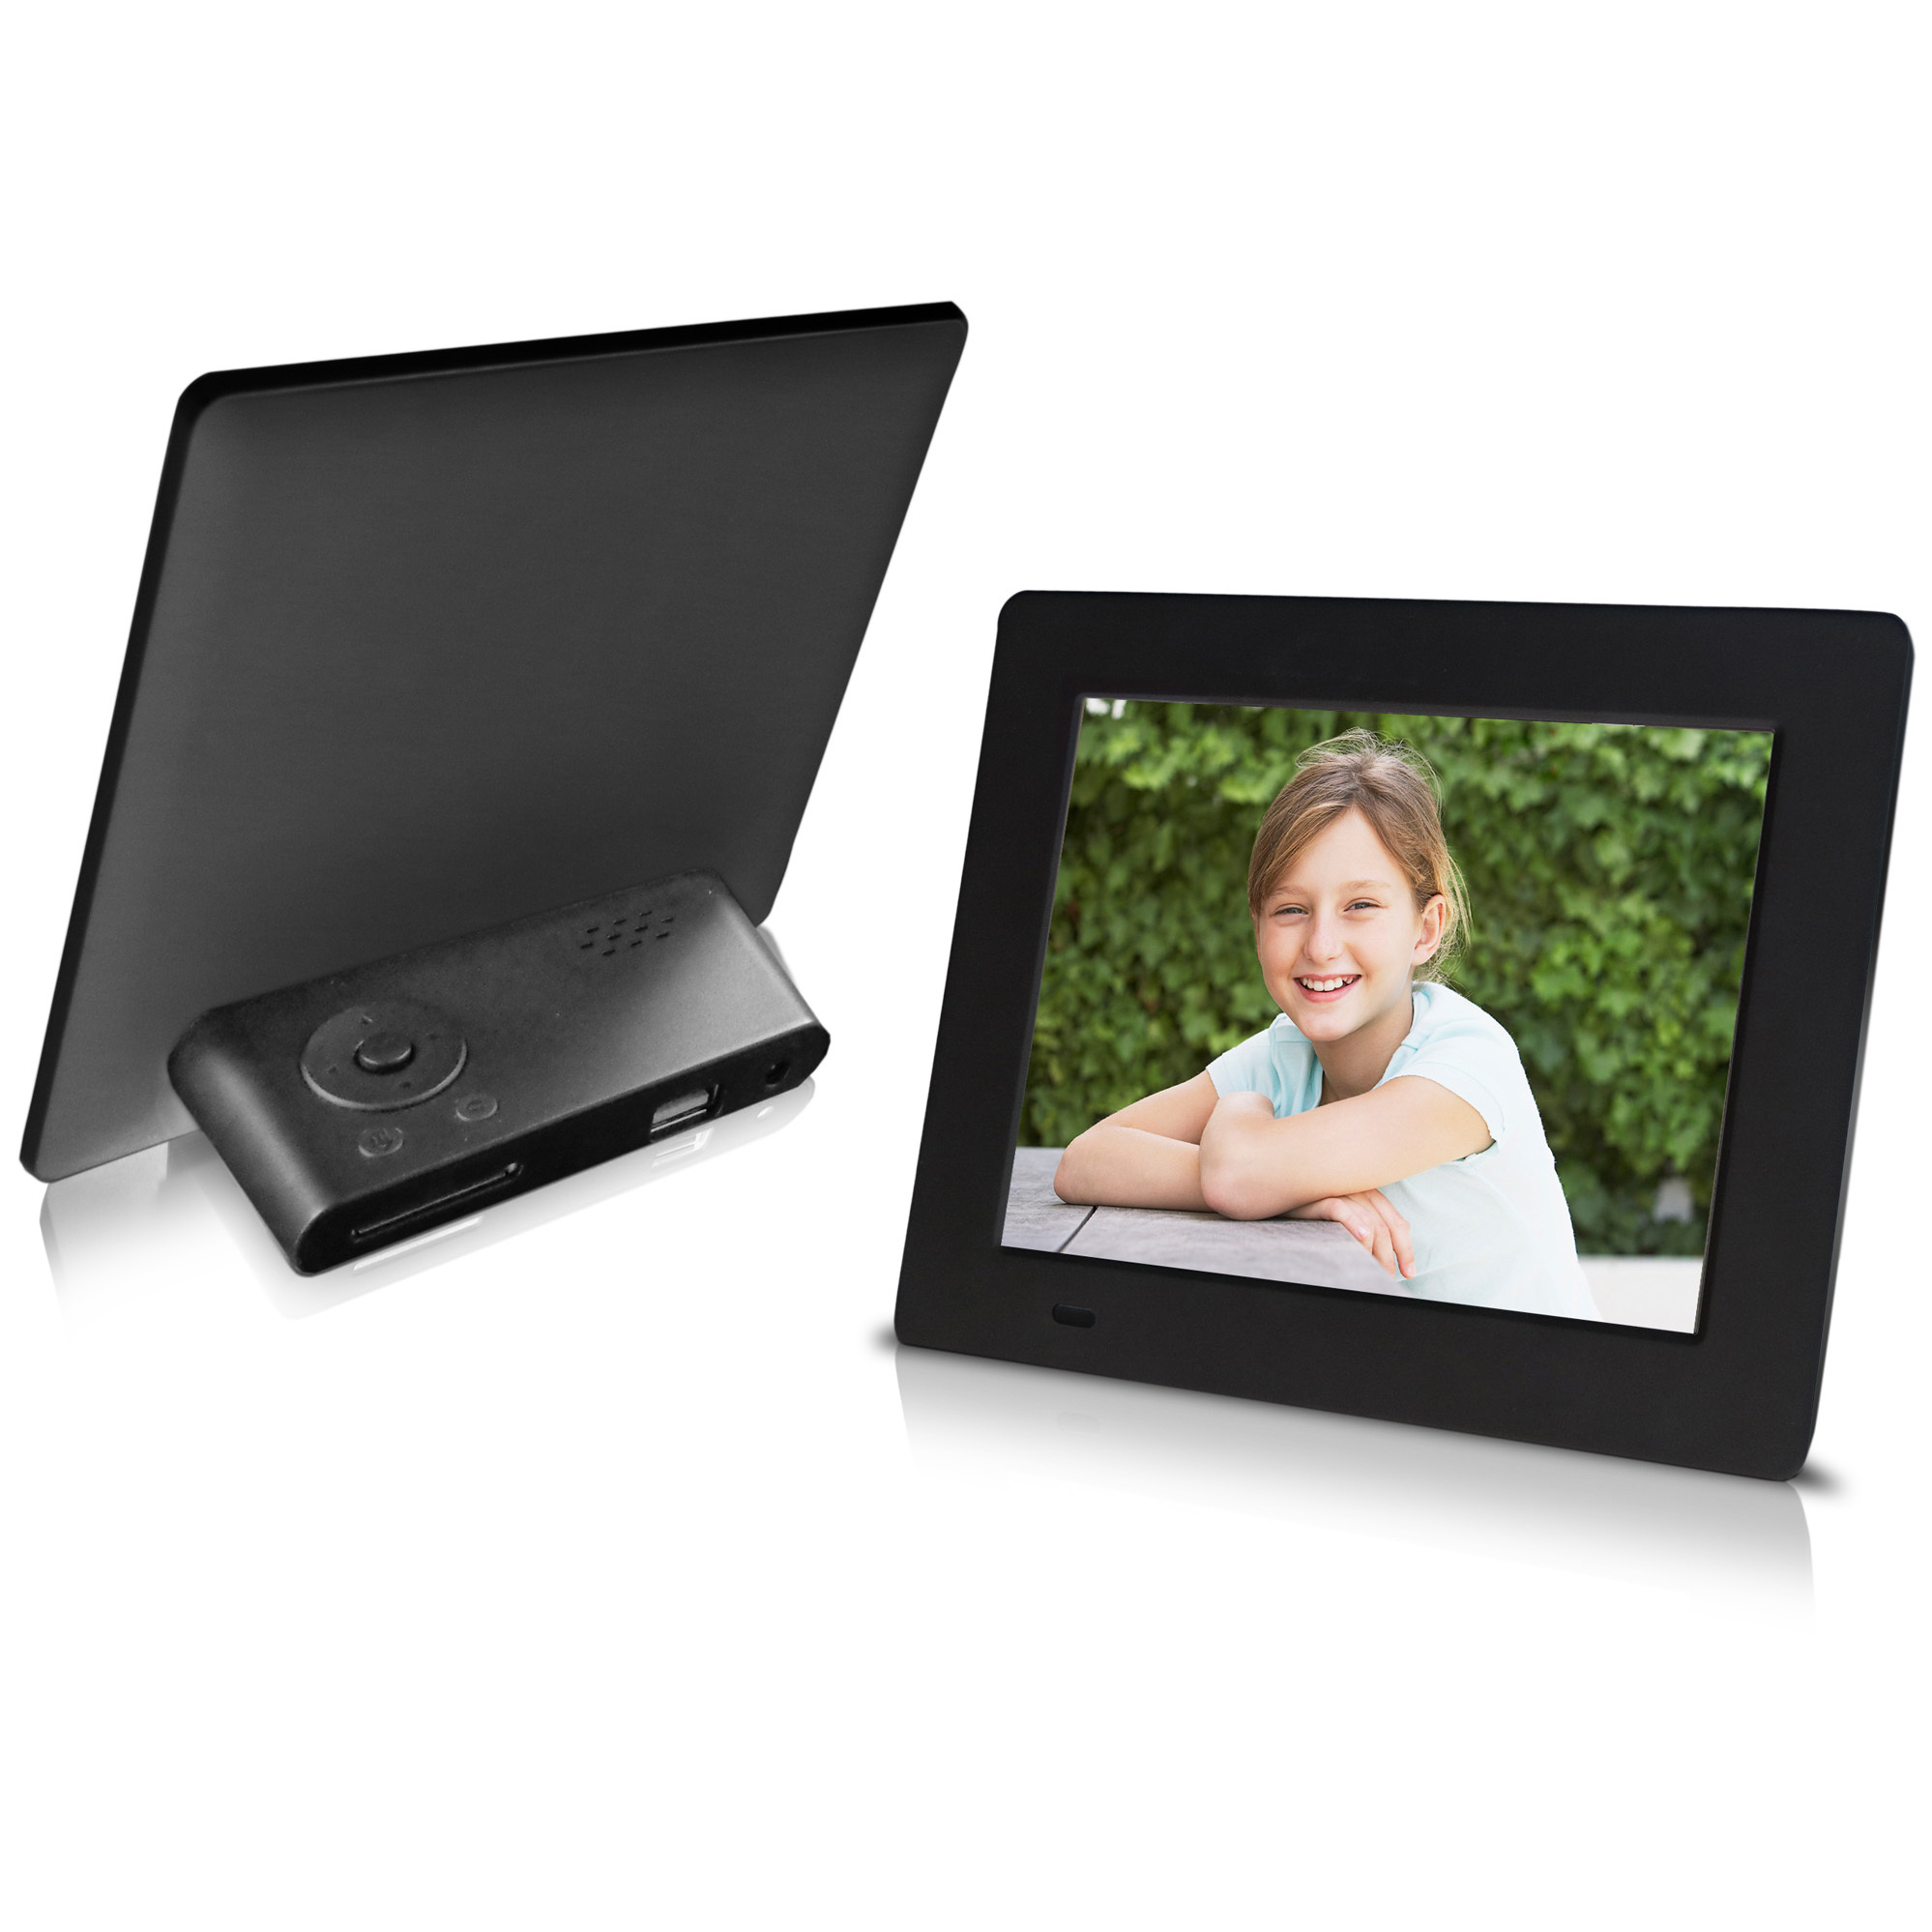 "The Sungale 7"" Digital Photo Frame showcases a rotating display of your favorite photos... with bright, vivid digital clarity! Memories don't fade. At least not with Sungale's 7"" Digital Photo Frame. Your most cherished moments-as clear and vivid as the day they were captured-are never far away. Display a single photo or slide show presentation, complete with multiple transitional effects and interval times!Say cheese:7'' high-definition digital LCD screen displays photos capitallyPlay photosSlide show, step show, enjoy your photos in diversificationMultiple transitional effect and slide show interval timeThumbnail and file manager modeRotate photos to desired directionCompatible with SD / SDHC cardsUSB host to read various external devicesCalendar, Clock functionsShortcut button operationTFT LCD type: DigitalScreen dimension: 7 inch (4:3)Resolution: 800 x 600 pixelsPhoto file formats: JPEGSupport Memory Card Type: SD / SDHCUSB connection: USB hostPower supply: AC 100~240V DC 5VAC adapter. - $34.99"